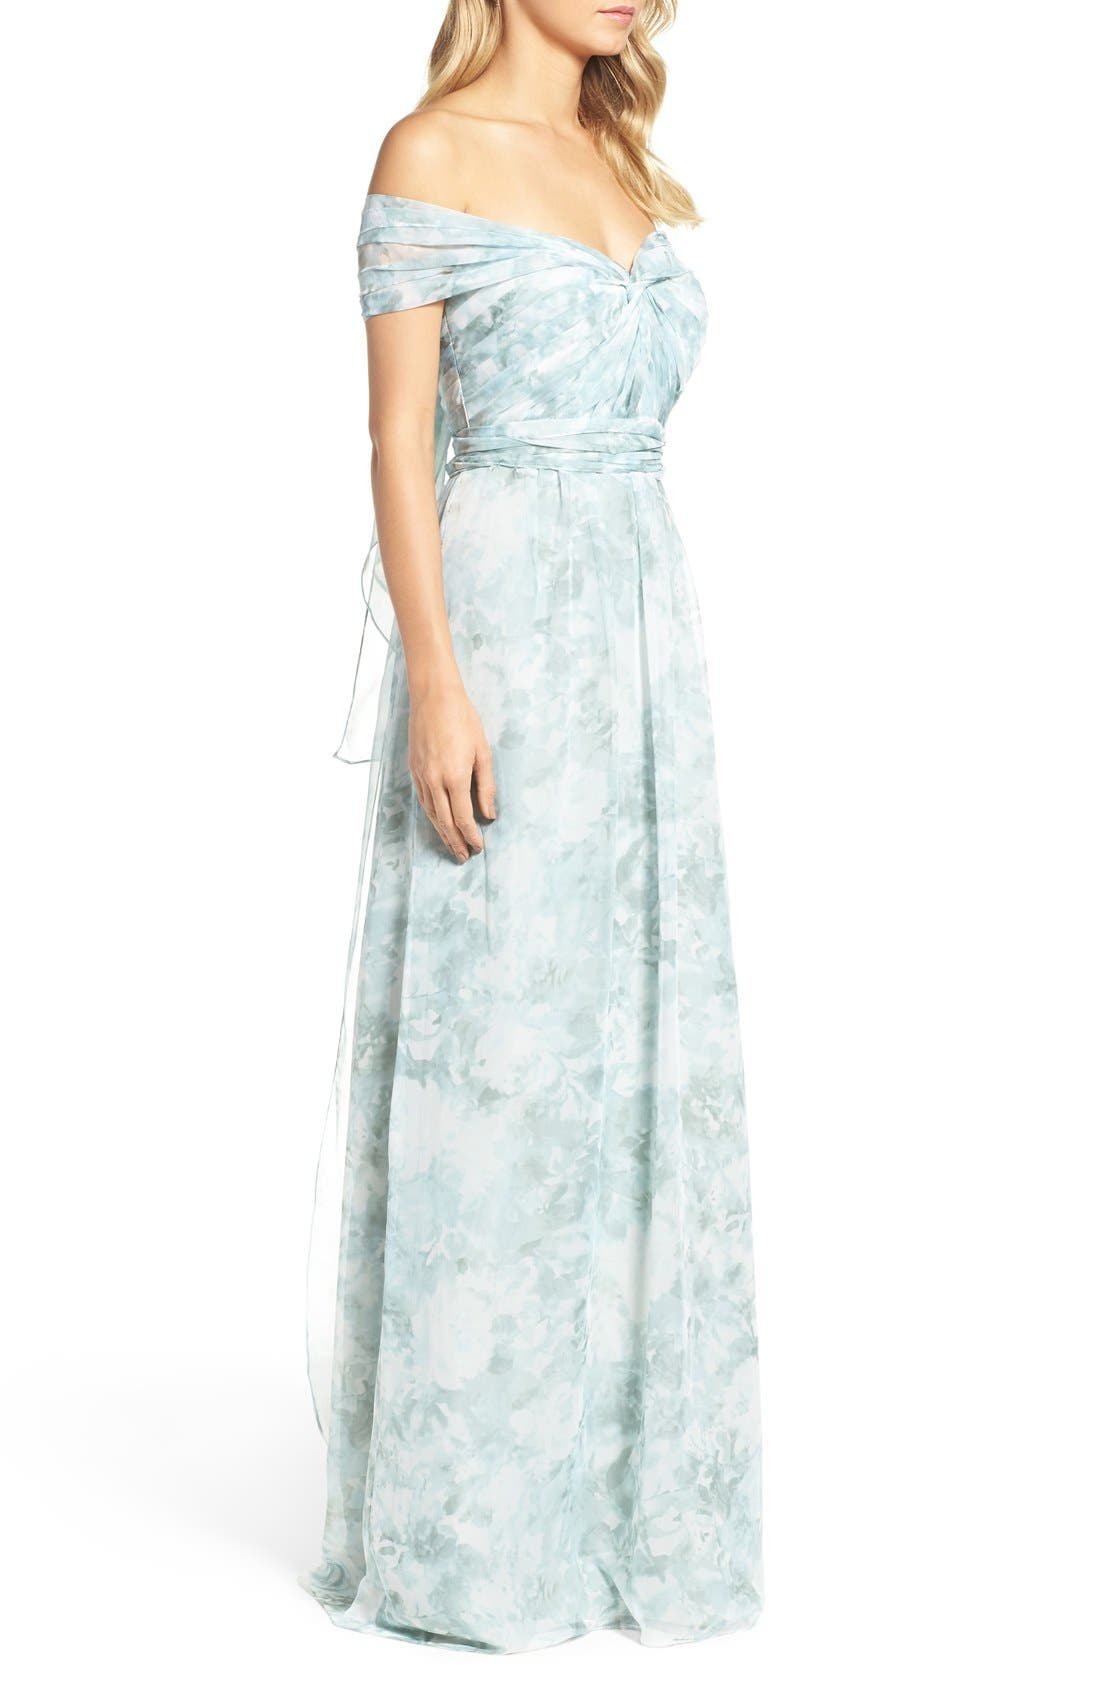 Nyla Floral Print Convertible Strapless Chiffon Gown,                             Alternate thumbnail 22, color,